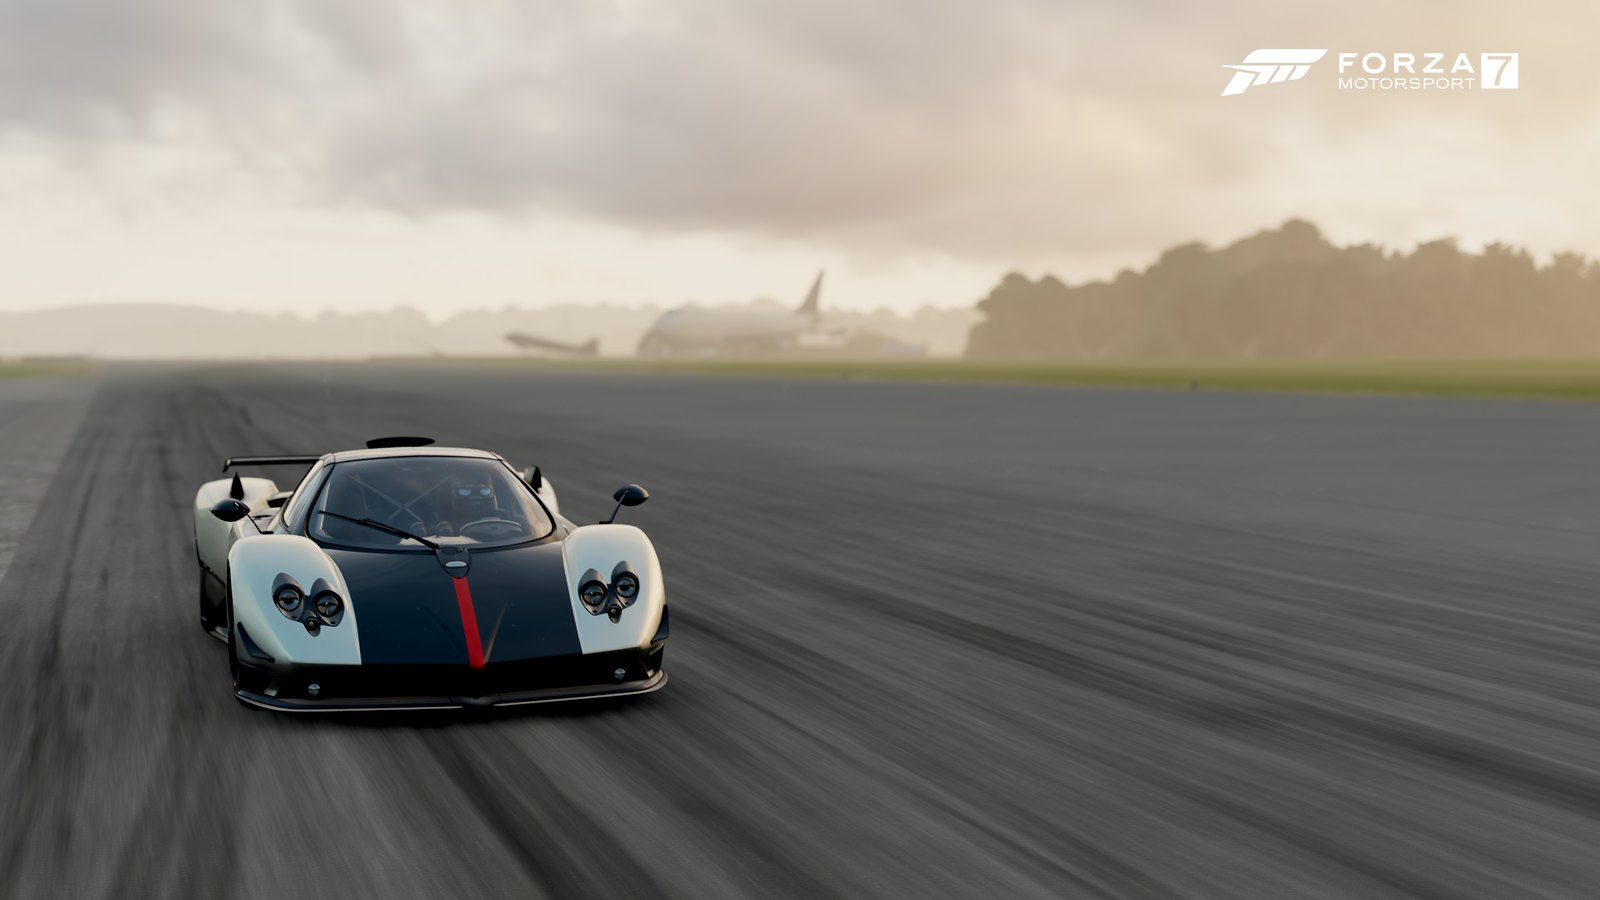 25705959207_04a4bc3379_h ForzaMotorsport.fr